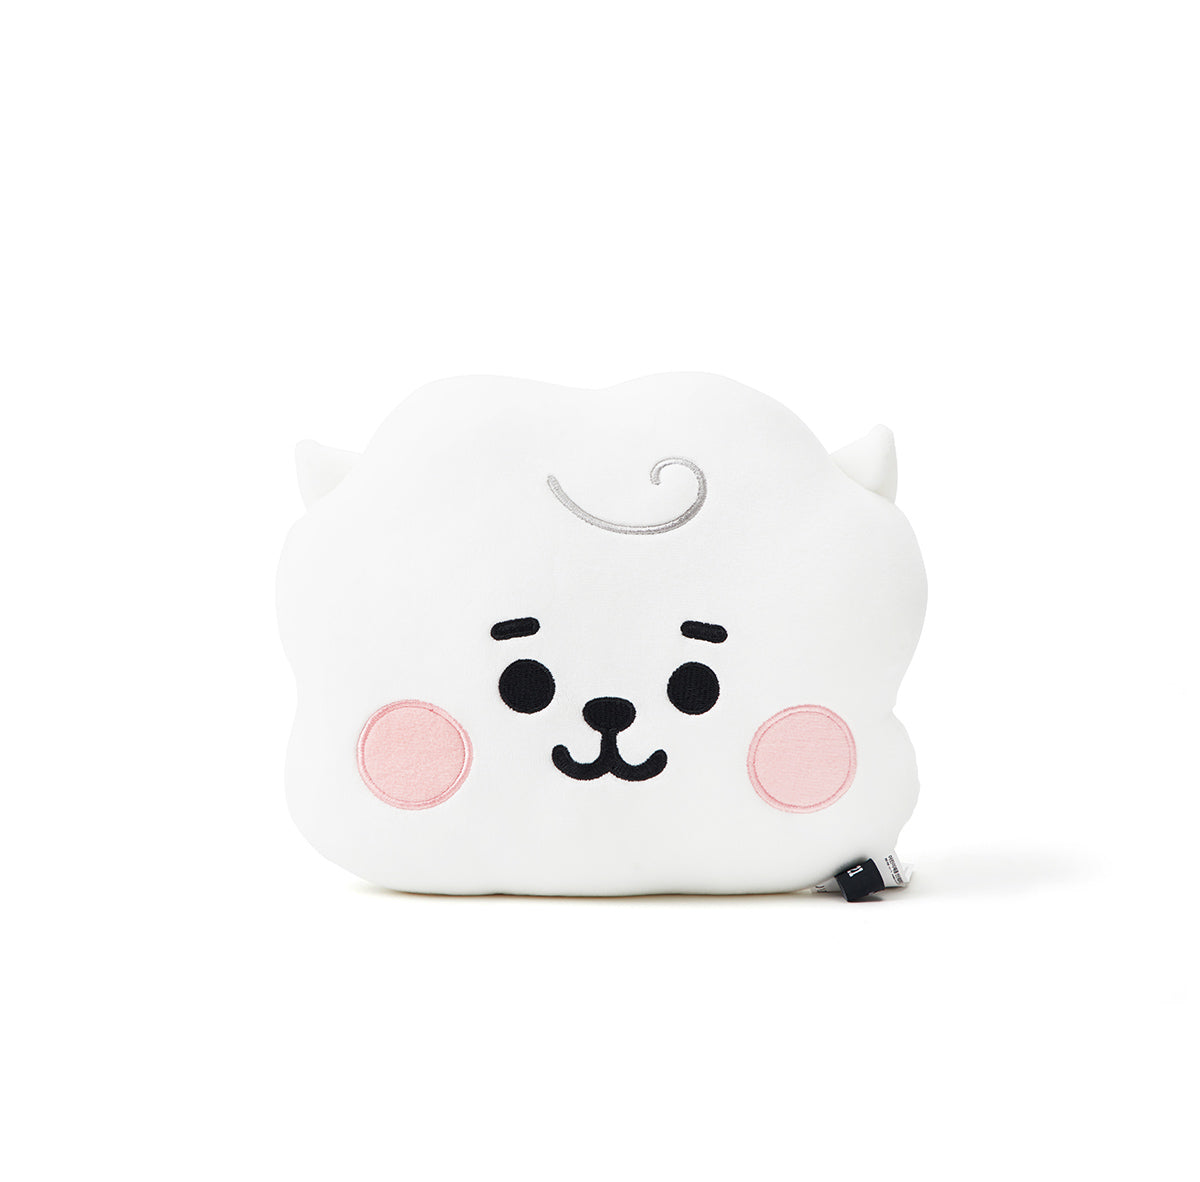 BT21 Baby RJ Flat Face Cushion